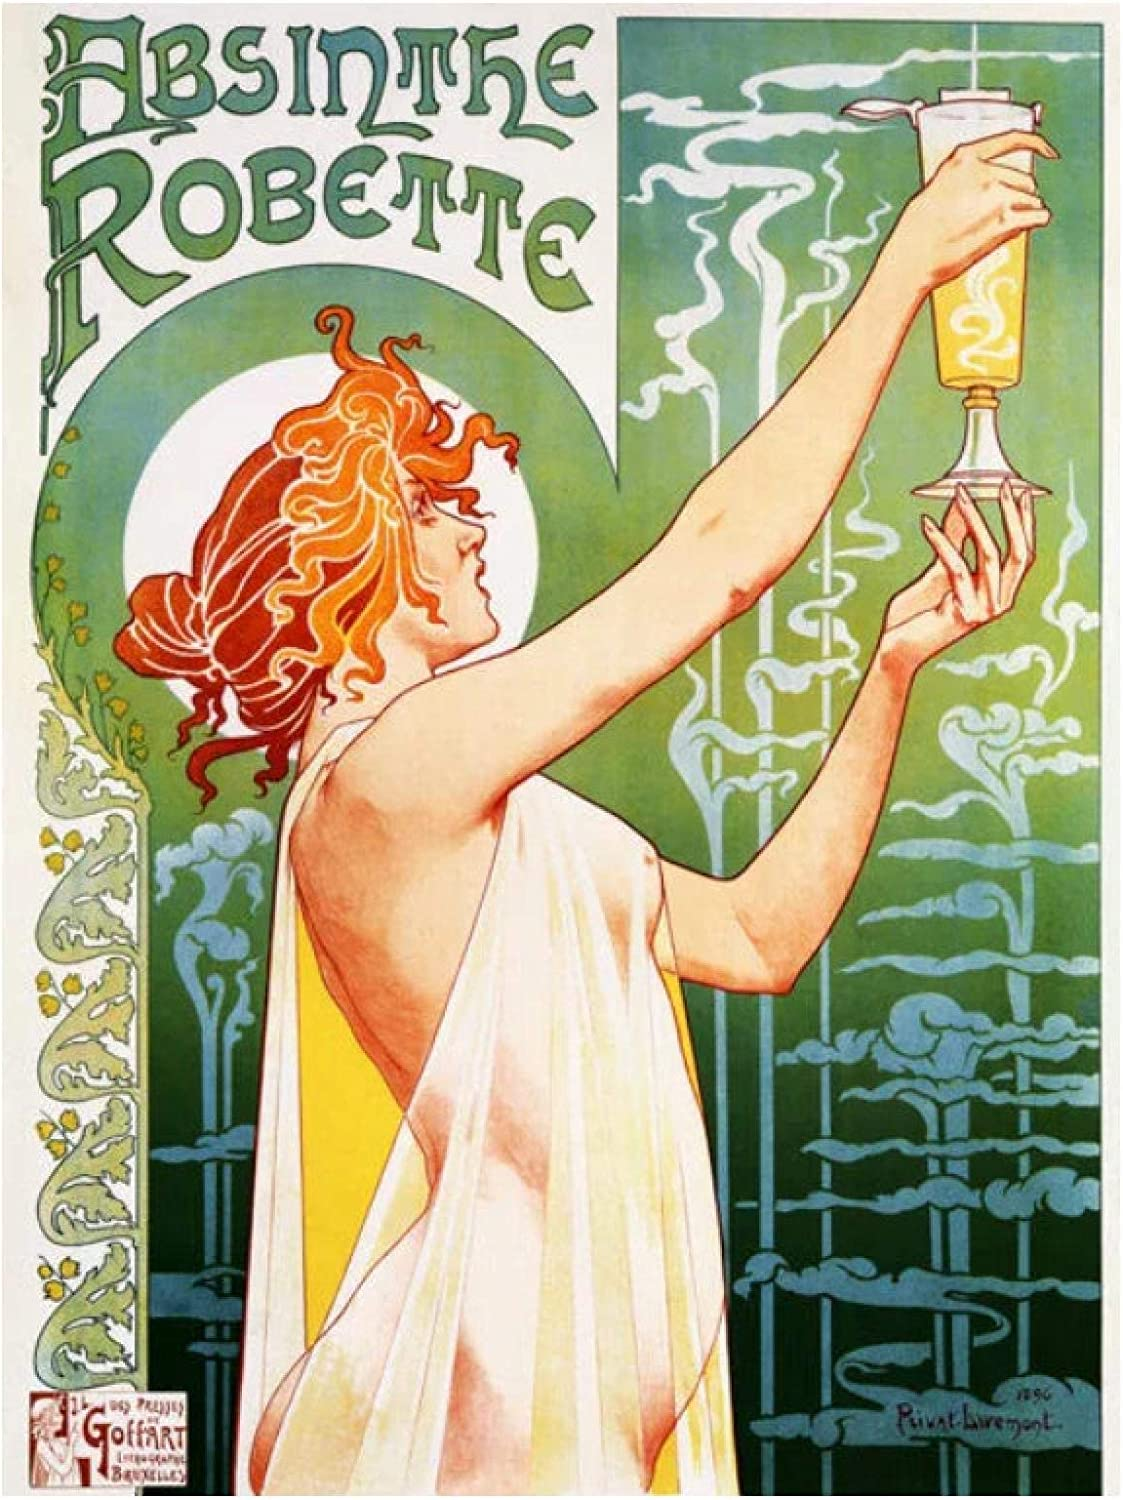 SBtTEtesjtt Vintage Alcoholic Beverages Wine Poster Absinthe Persan Export Classic Canvas Print Wall Art Home Decor Gift -60X80Cm No Frame